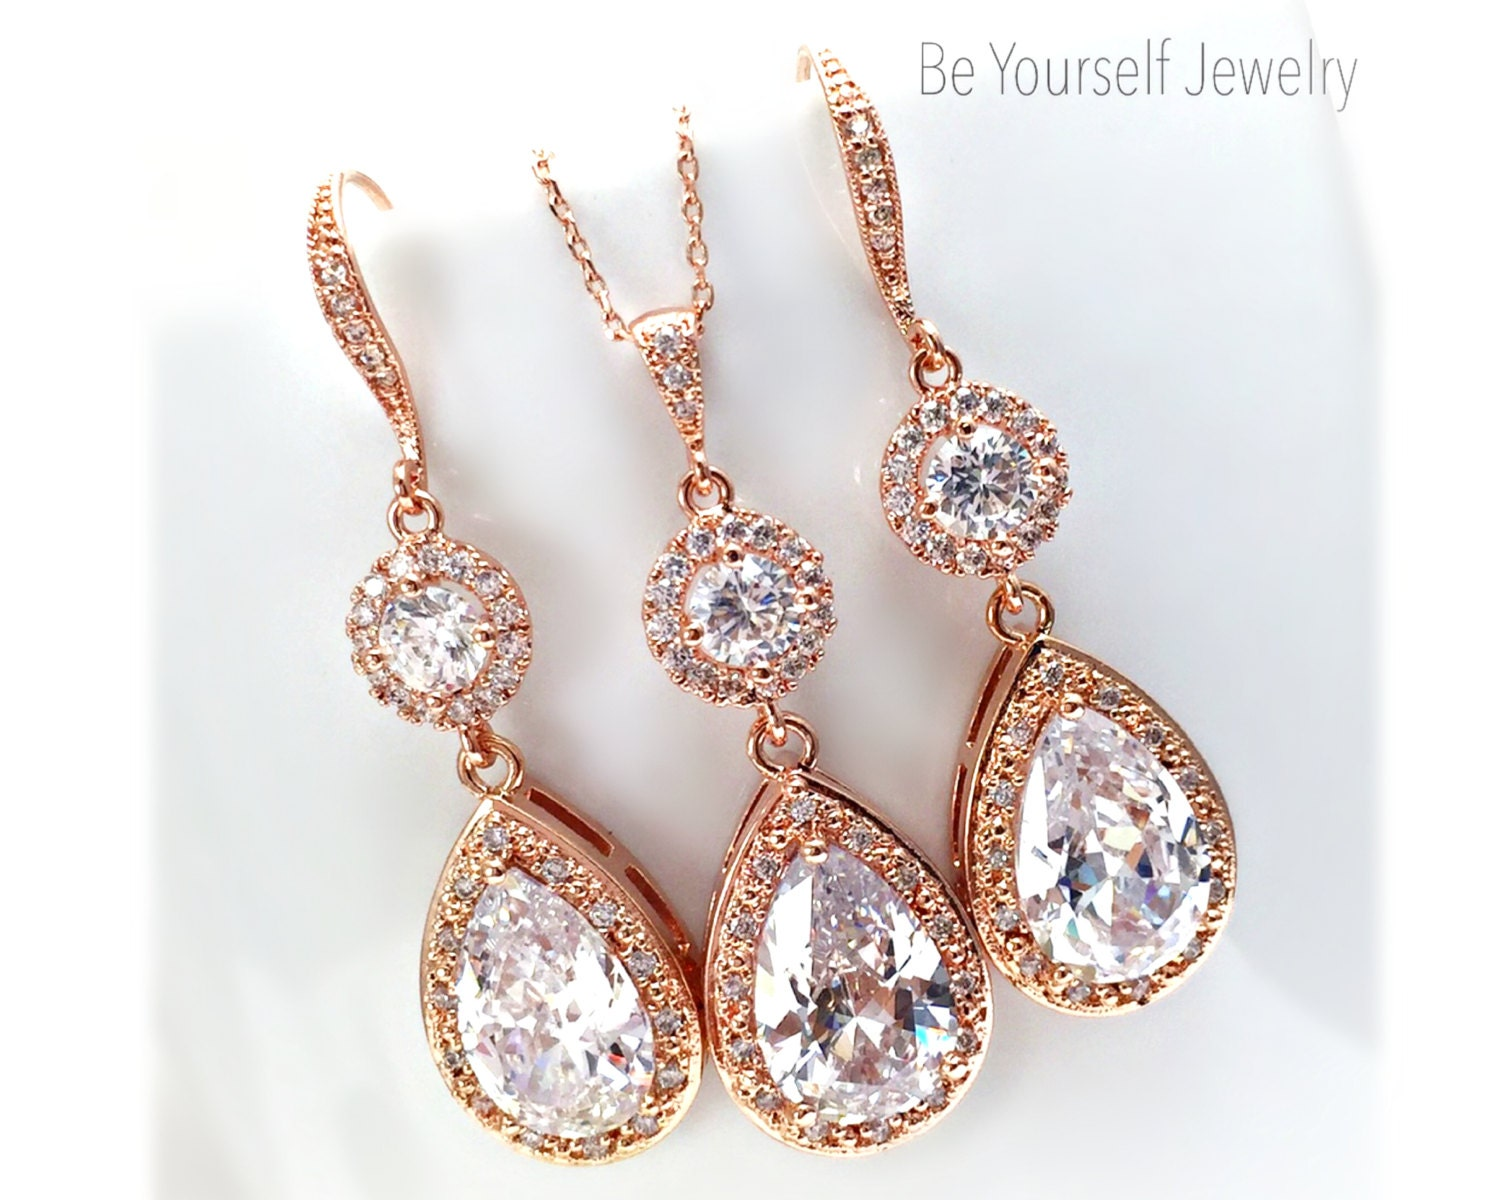 Rose Gold Bridal Earrings White Crystal Teardrop Bride Necklace Cubic Zirconia Wedding Jewelry Pink Gold Bridesmaid Gift CZ Wedding Earrings